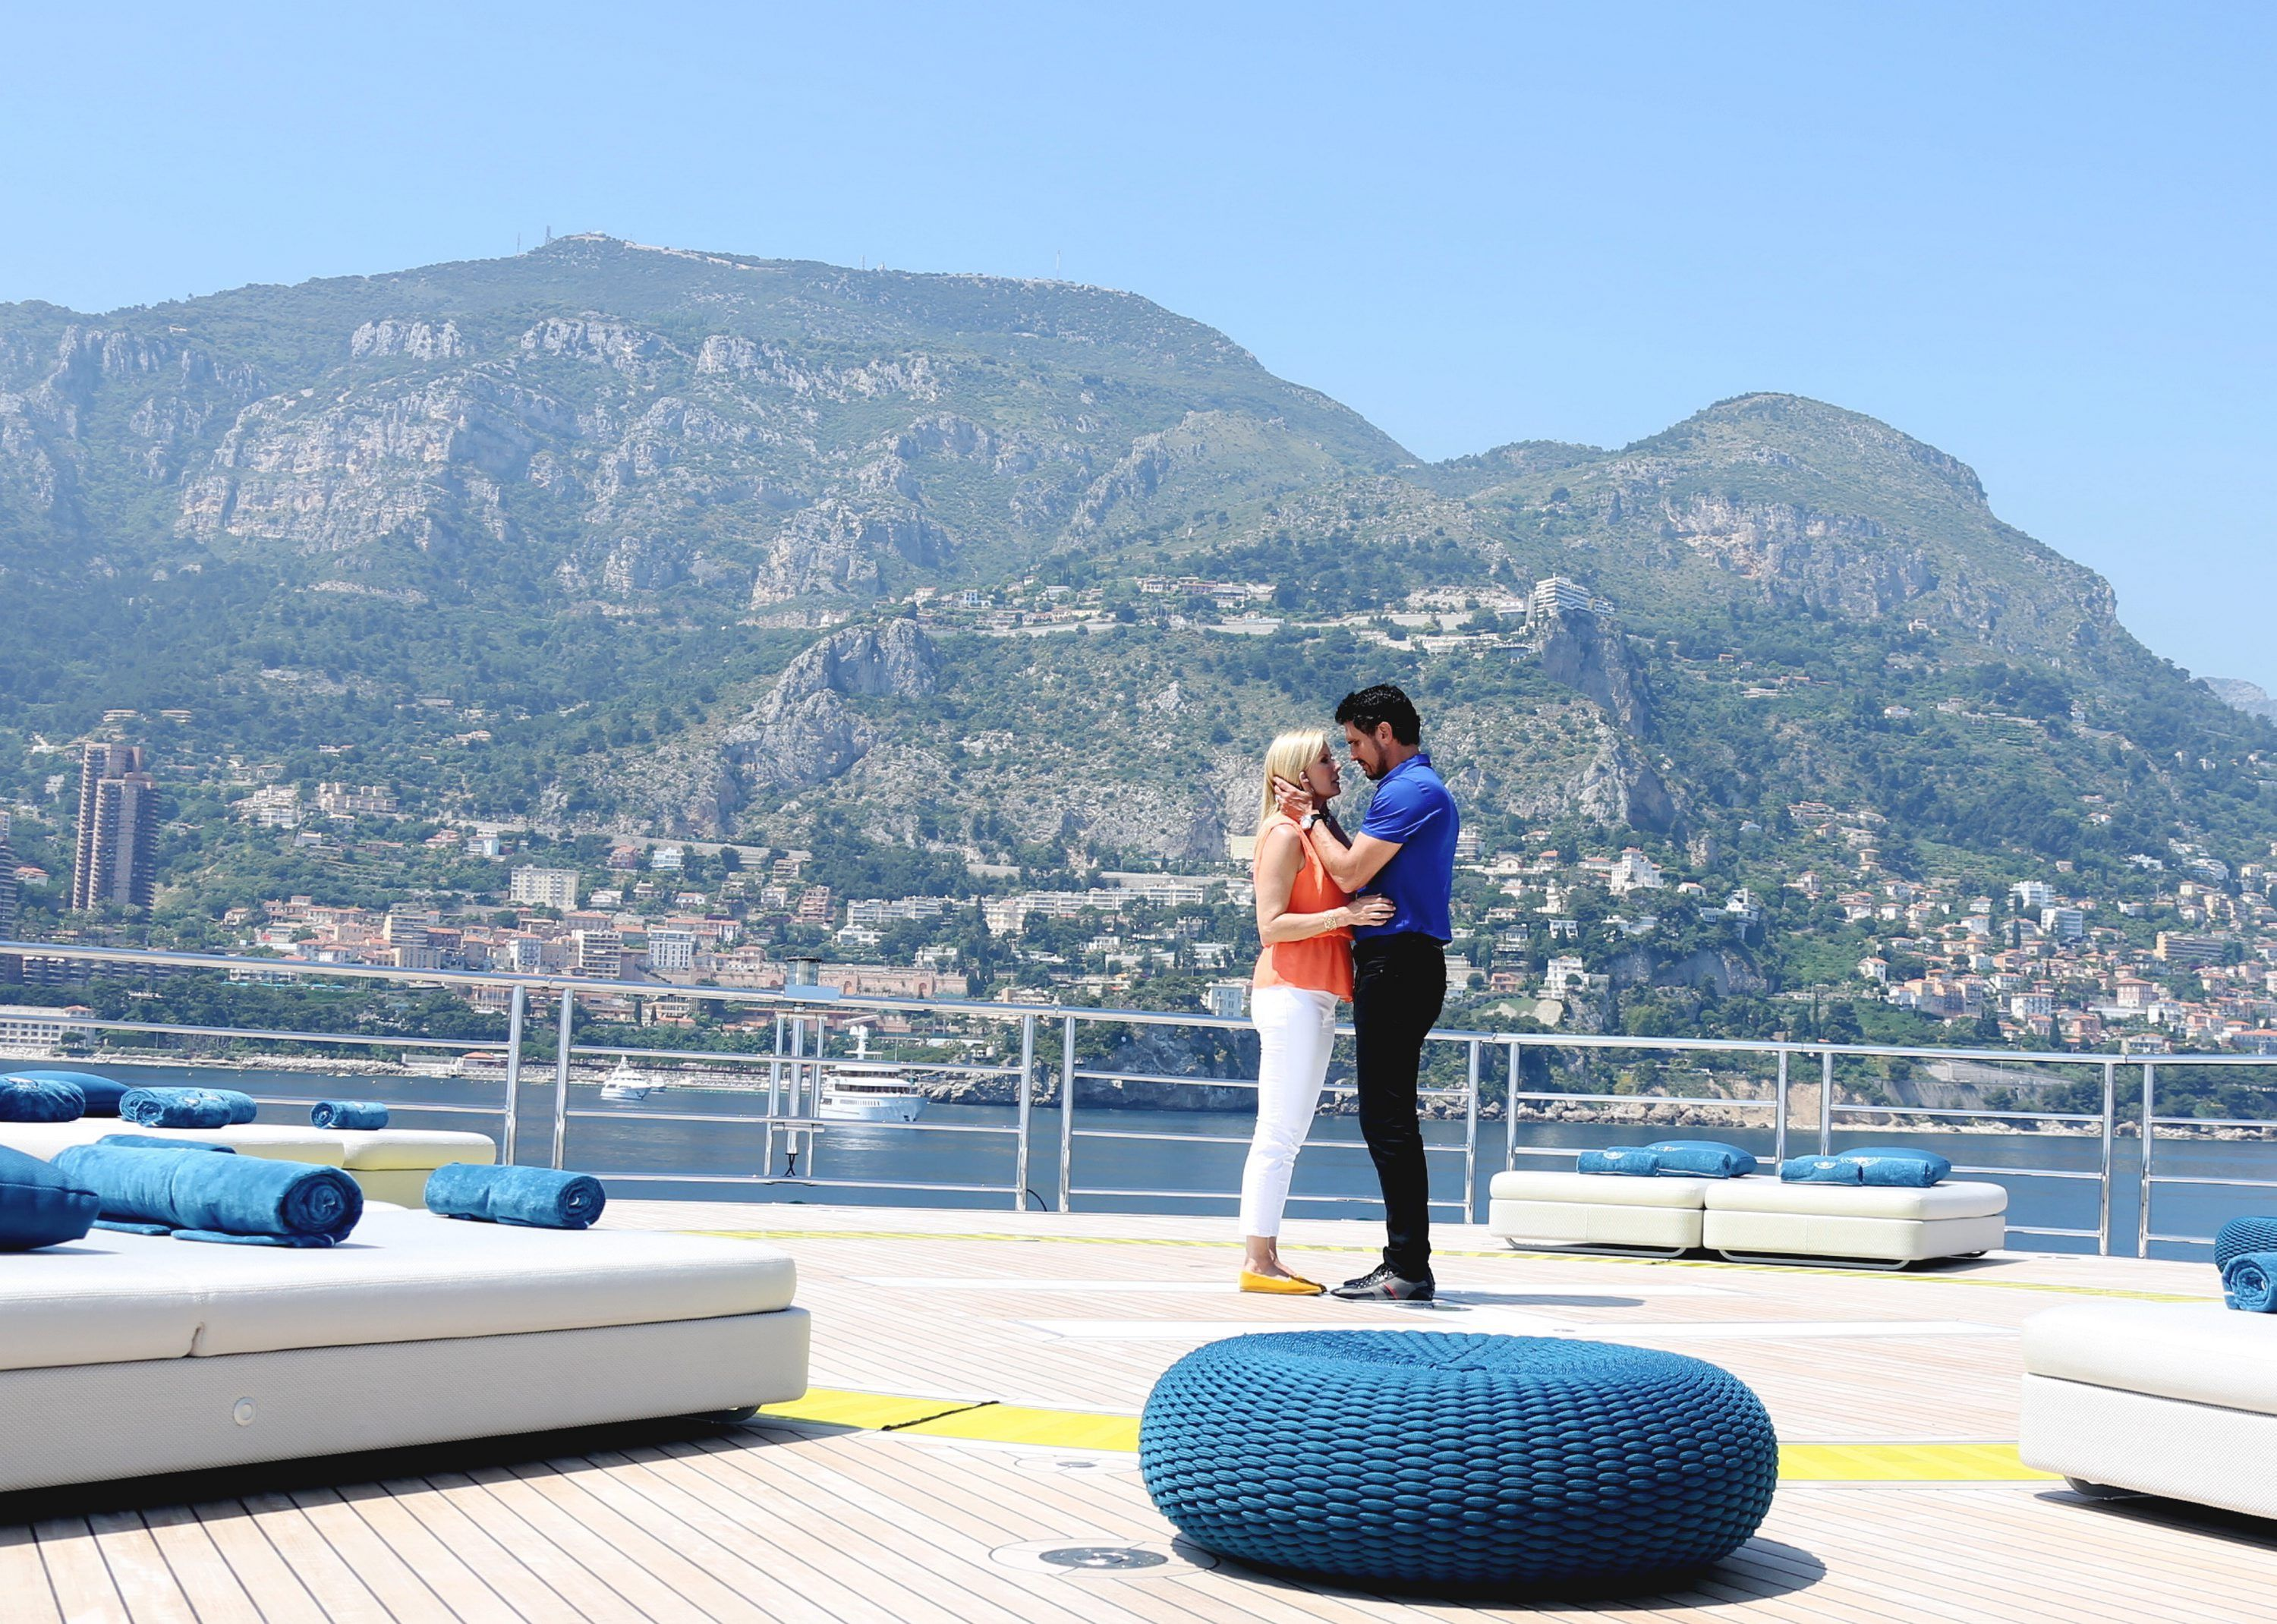 Bill and Brooke's Trip to Monte Carlo